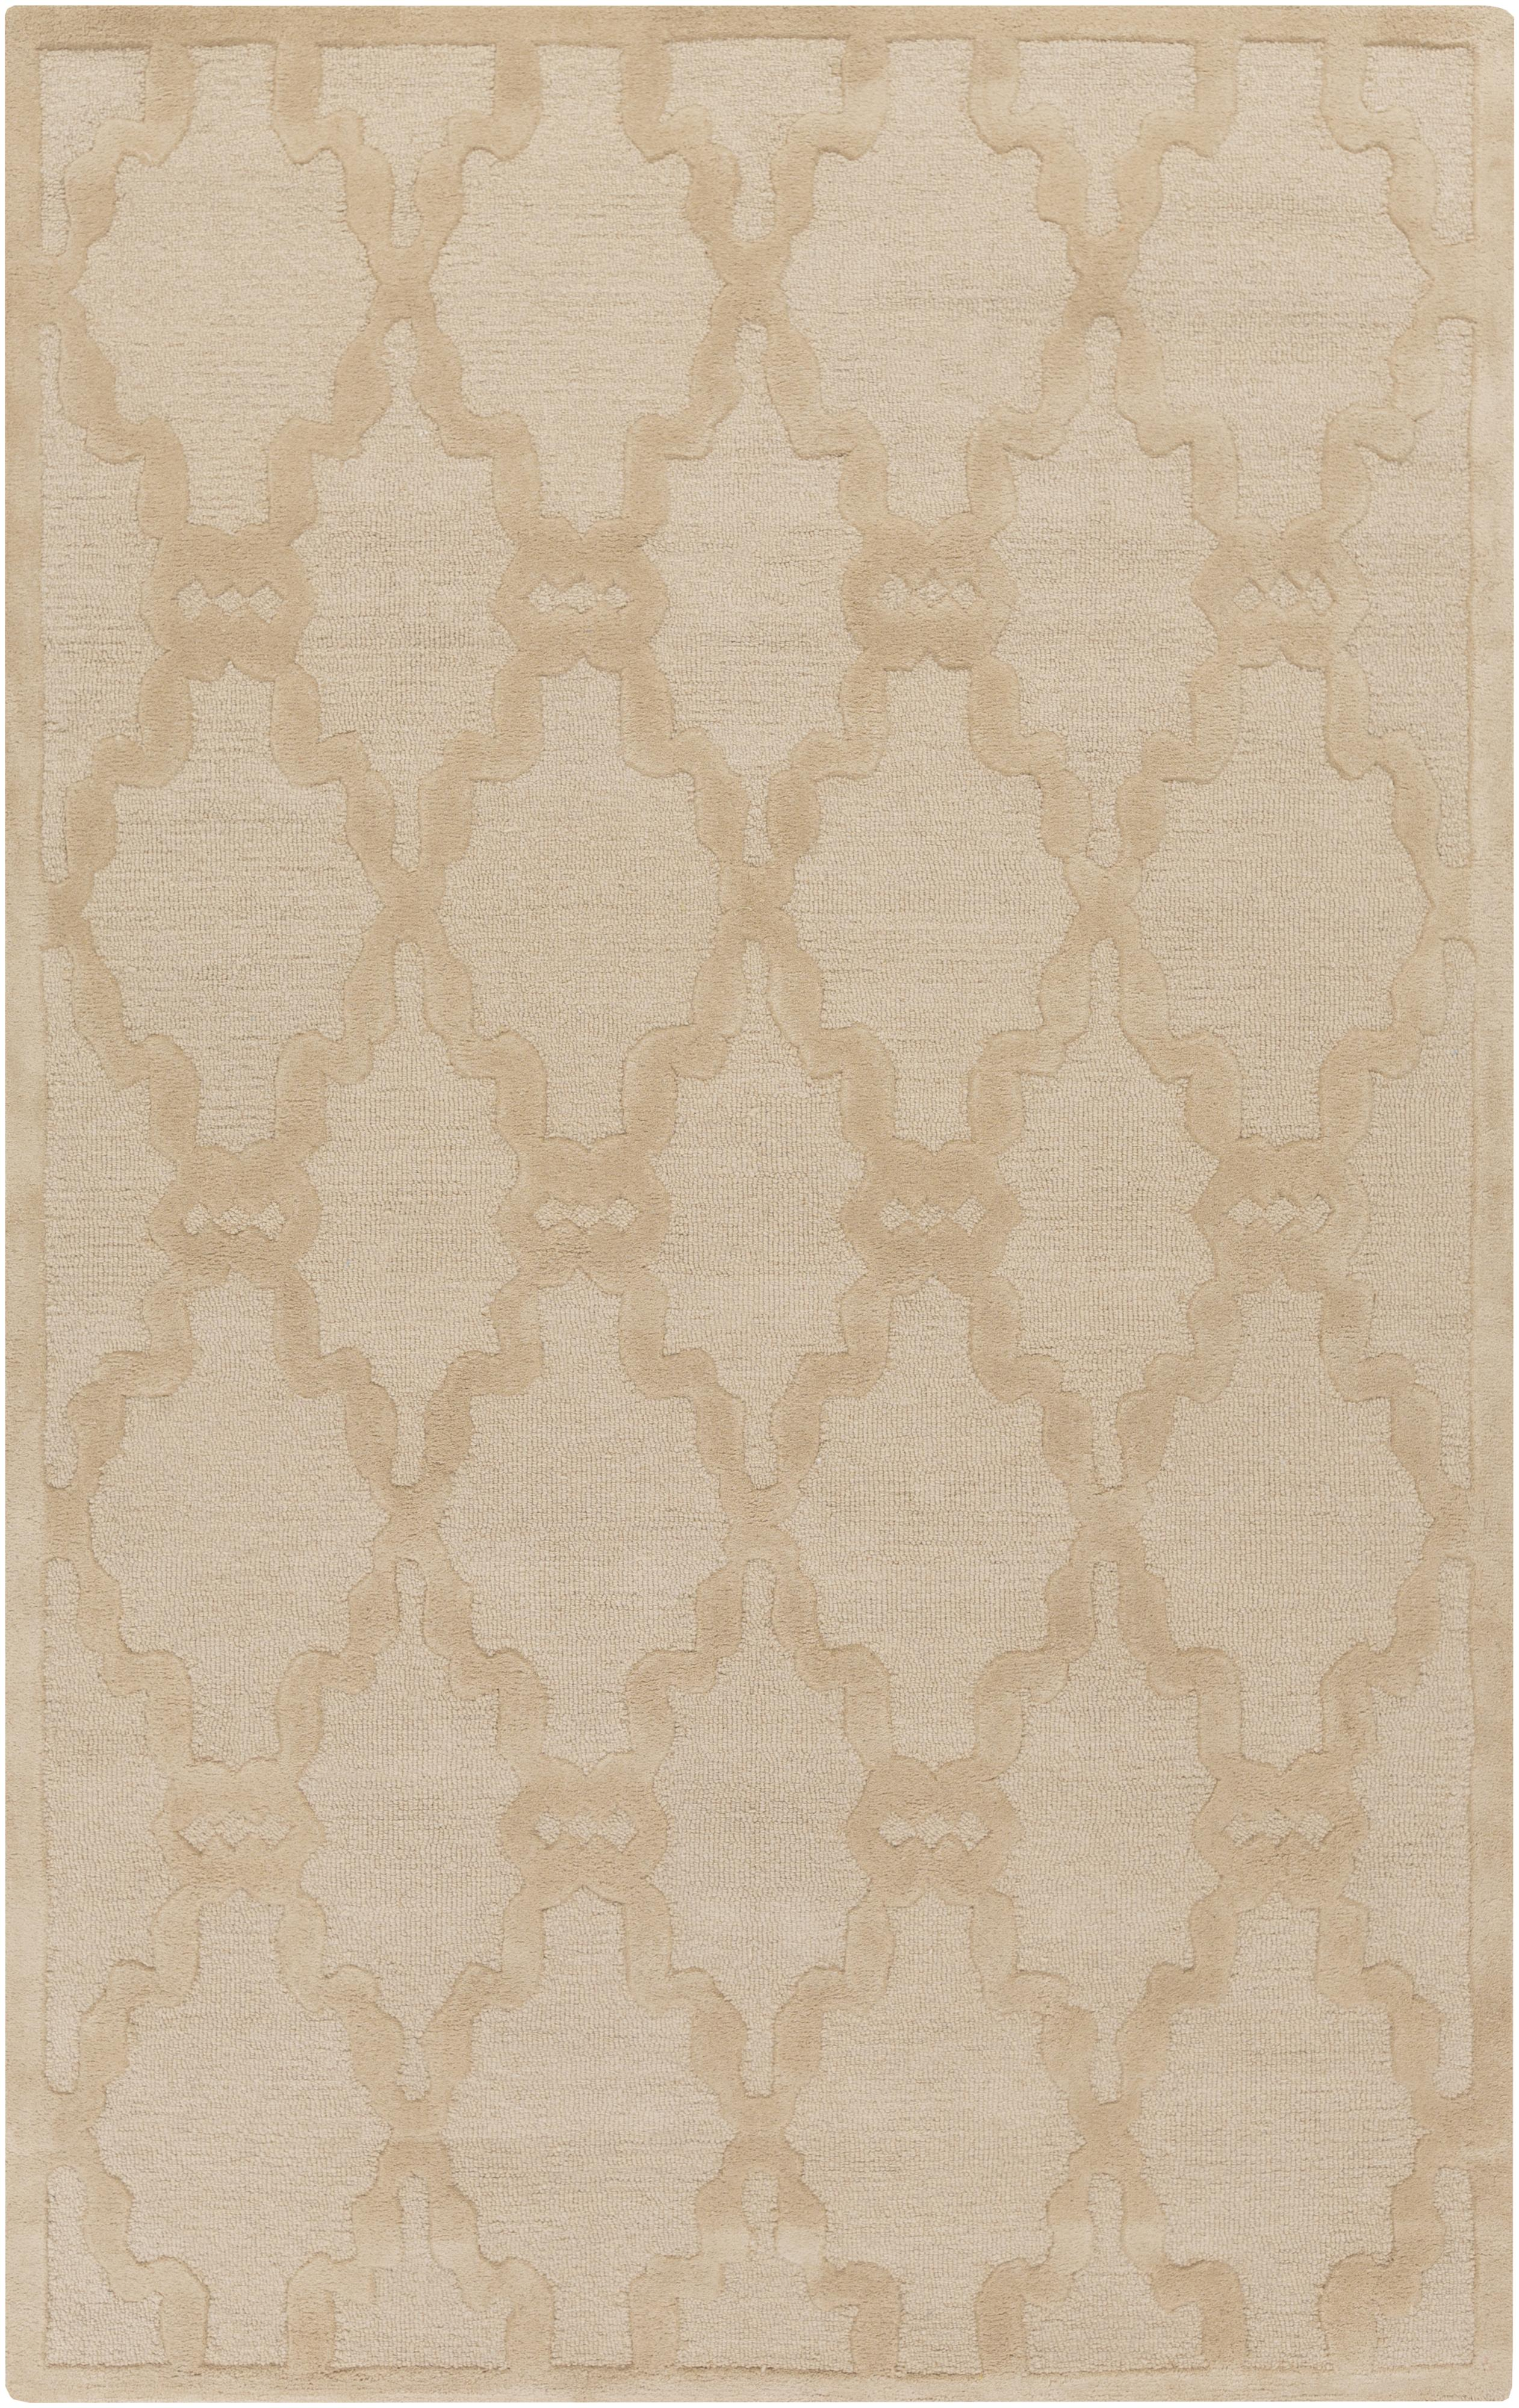 Surya Rugs Chandler 2' x 3' - Item Number: CHA4001-23